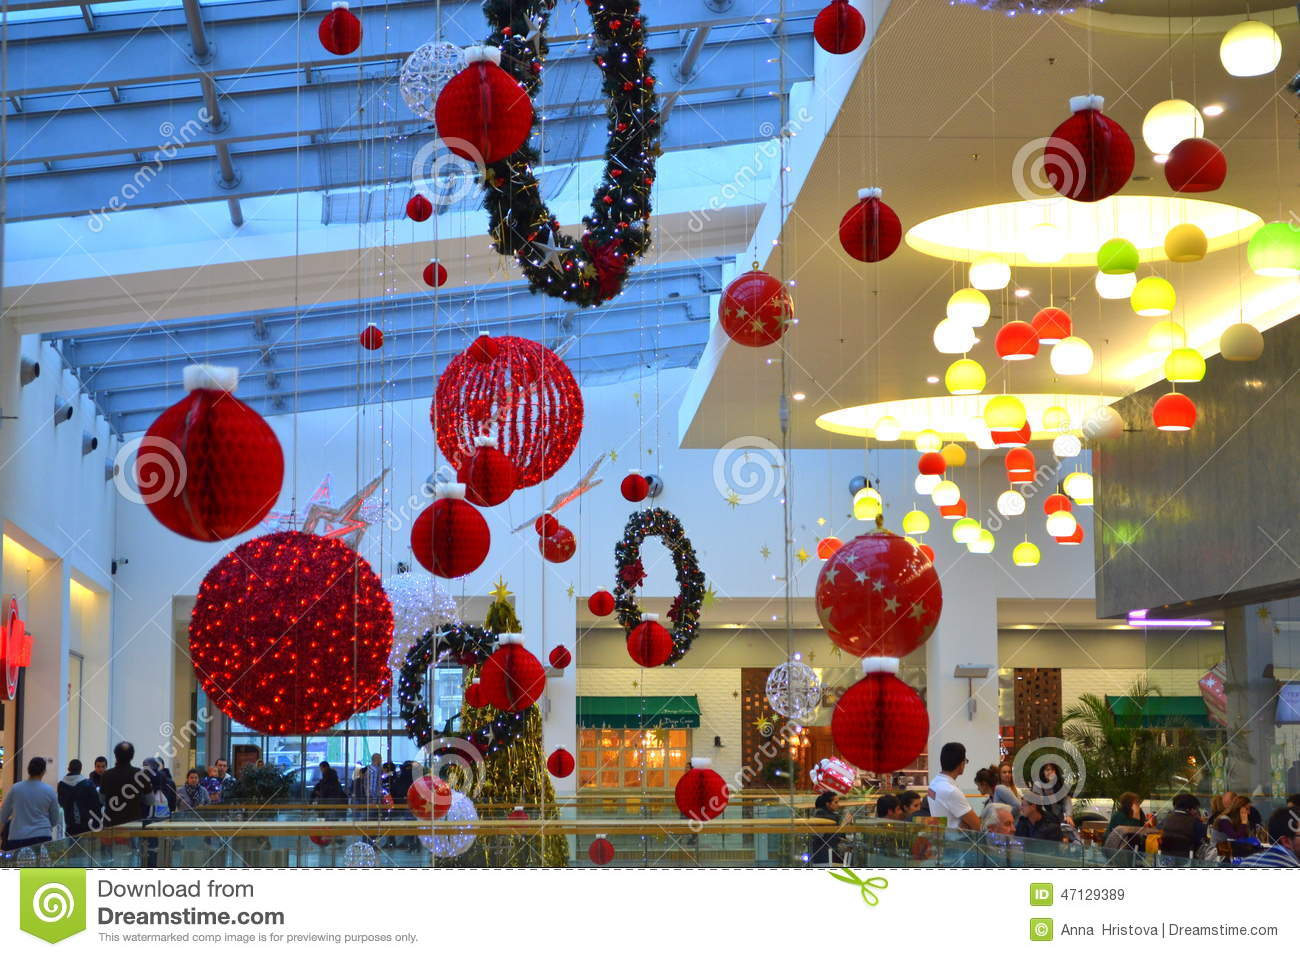 a shopping mall with christmas decorations filled with customers on black fridaypicture taken on november 21st2014varna citybulgaria - Black Friday Christmas Decorations